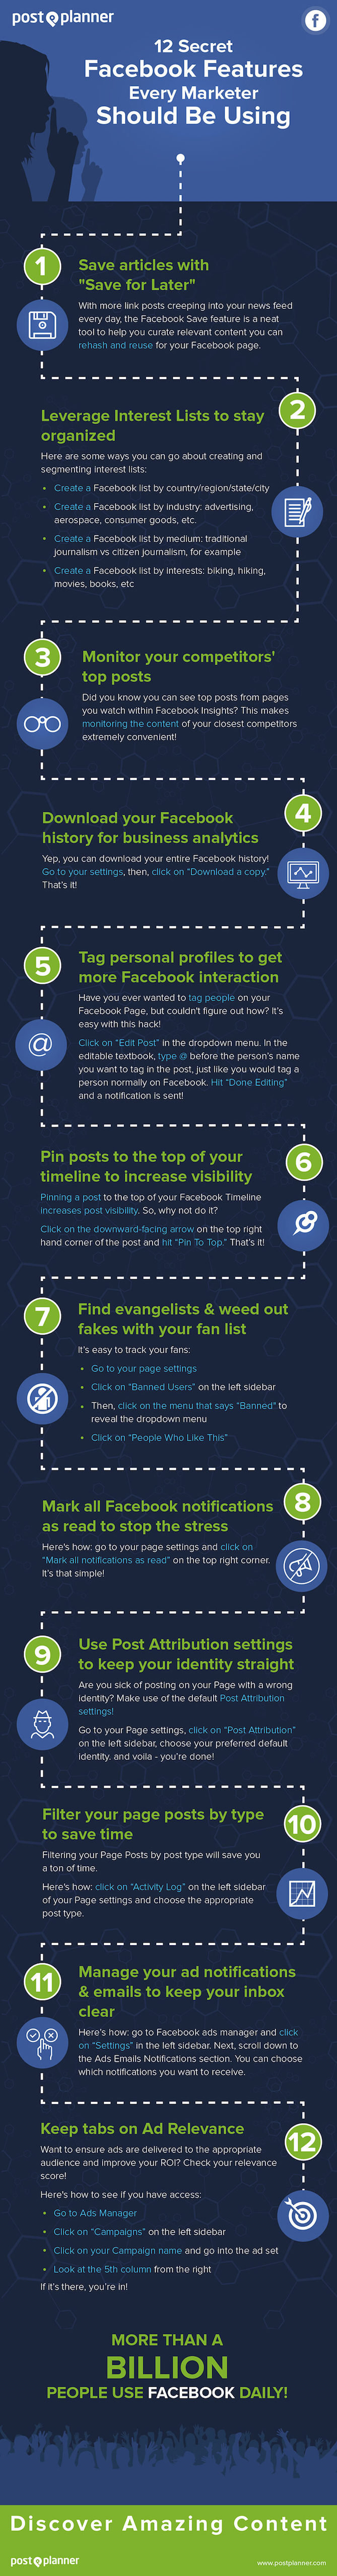 Secrets that every marketer should know and use in #Facebook #Infographic #SMM